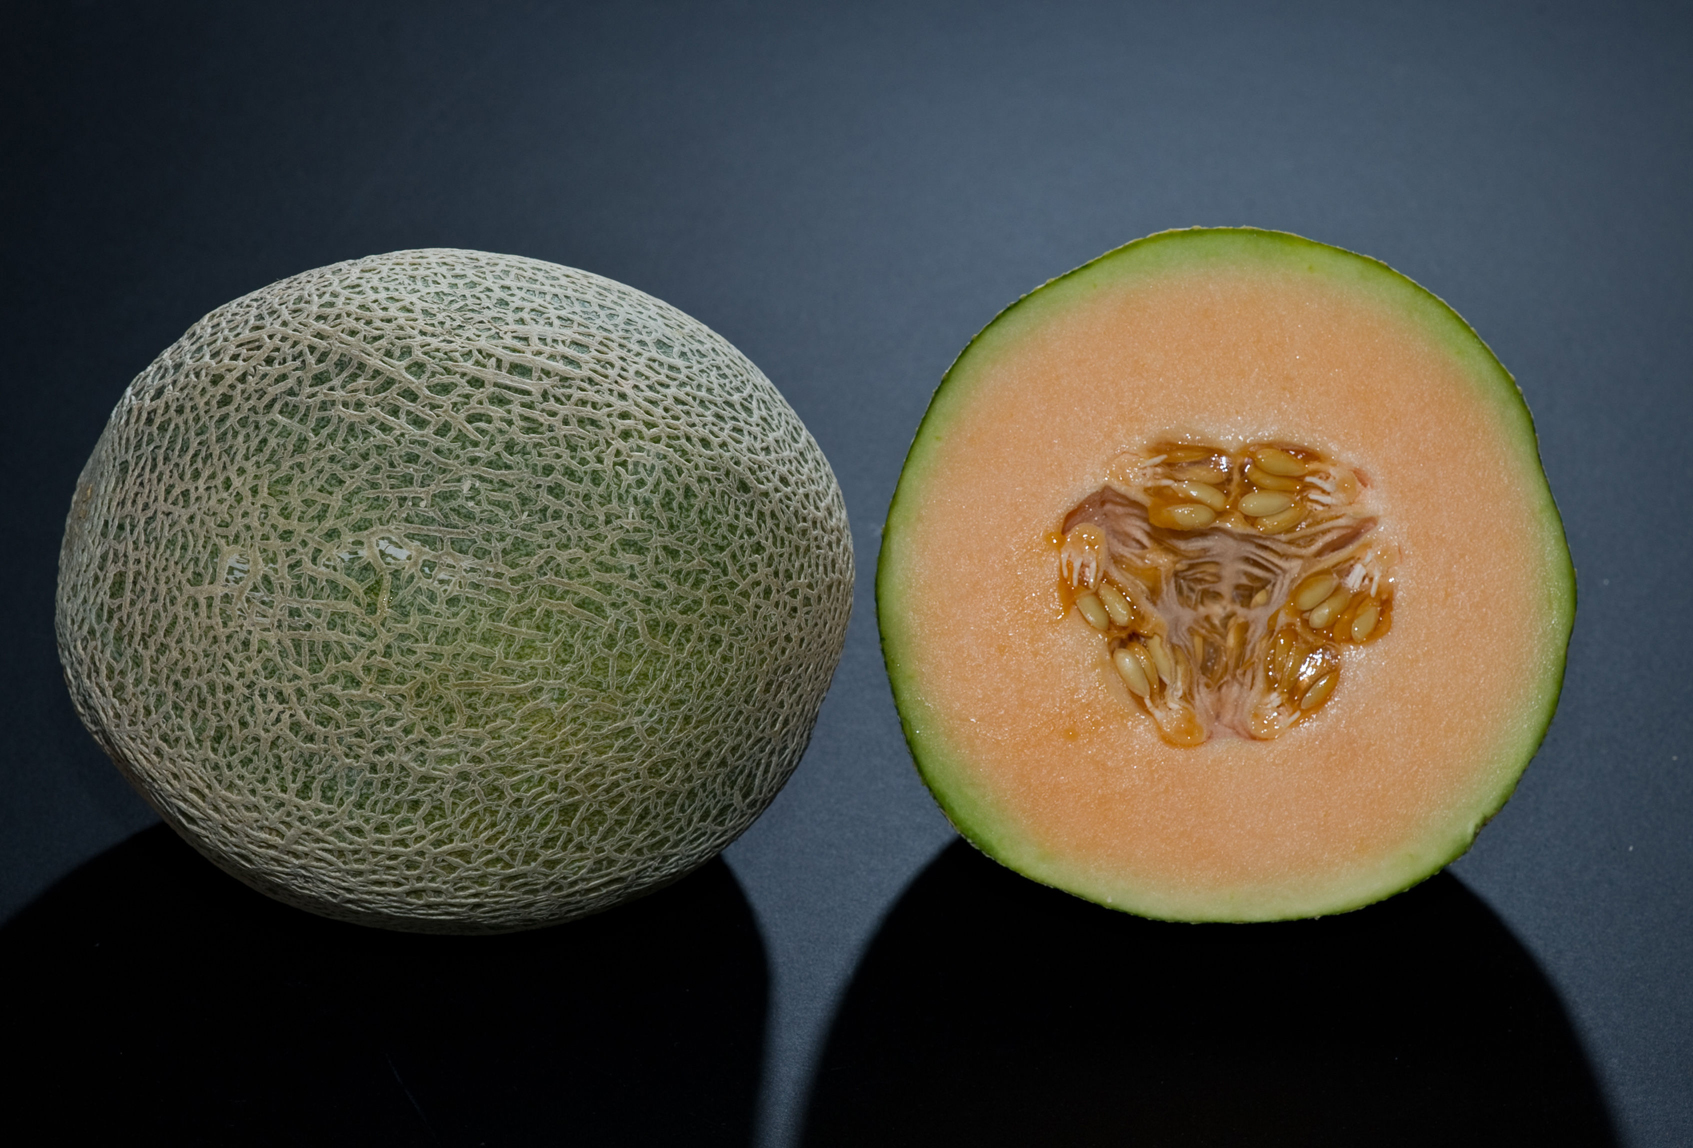 Honeydew-melon-cut